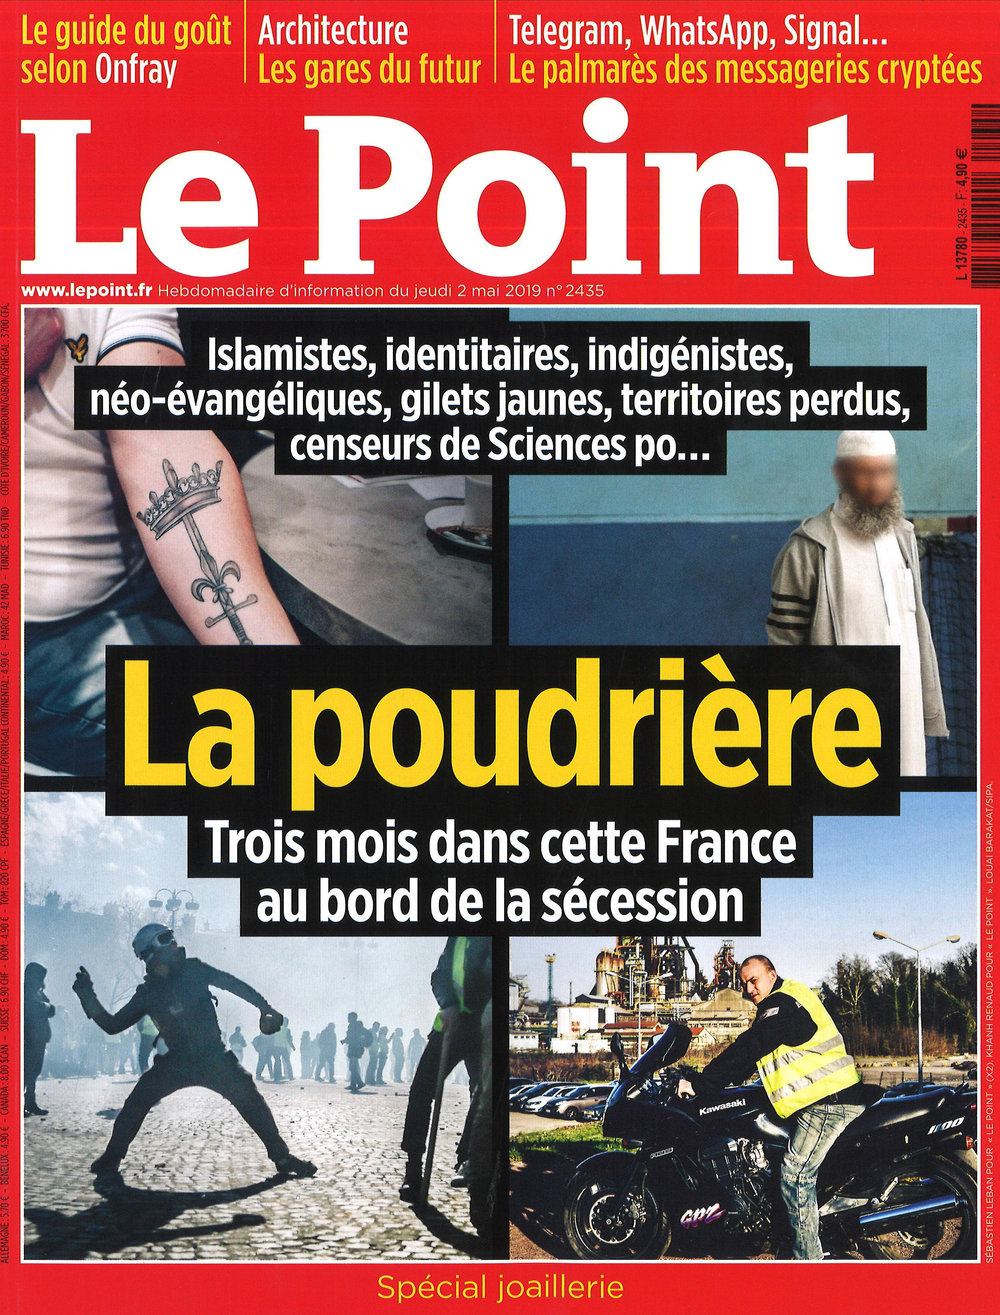 Le Point May 2019 Cover.jpg